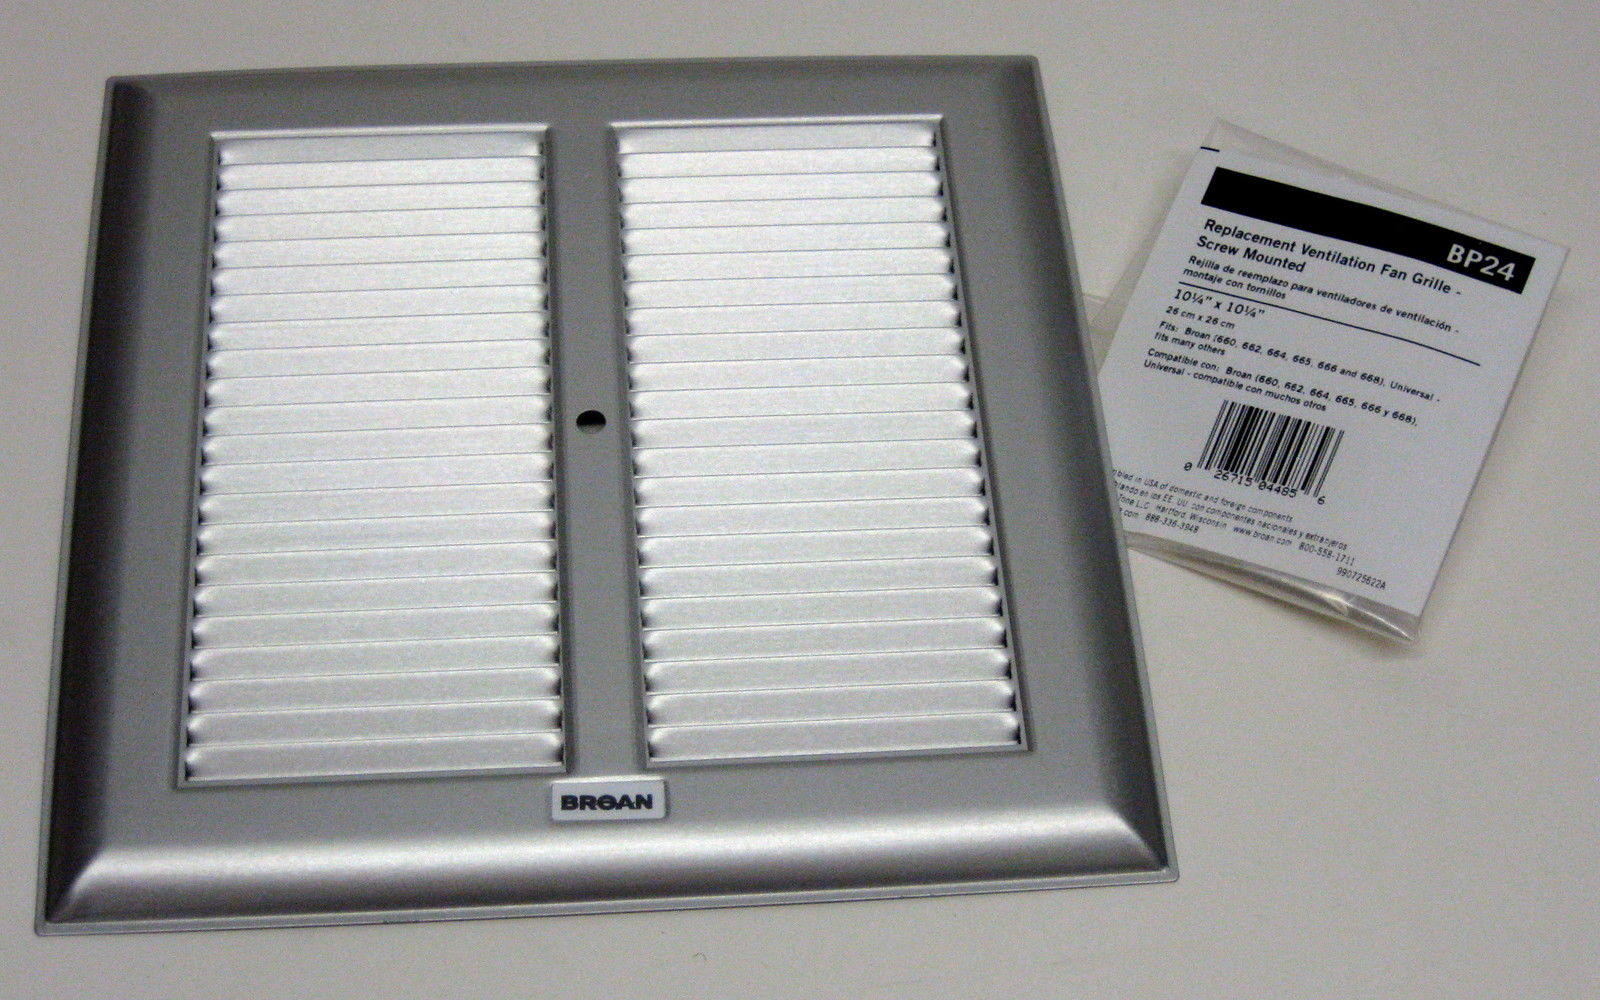 Bp24 Broan Bath Bathroom Ceiling Fan Grille Grill Cover Metal Silver Color Ebay